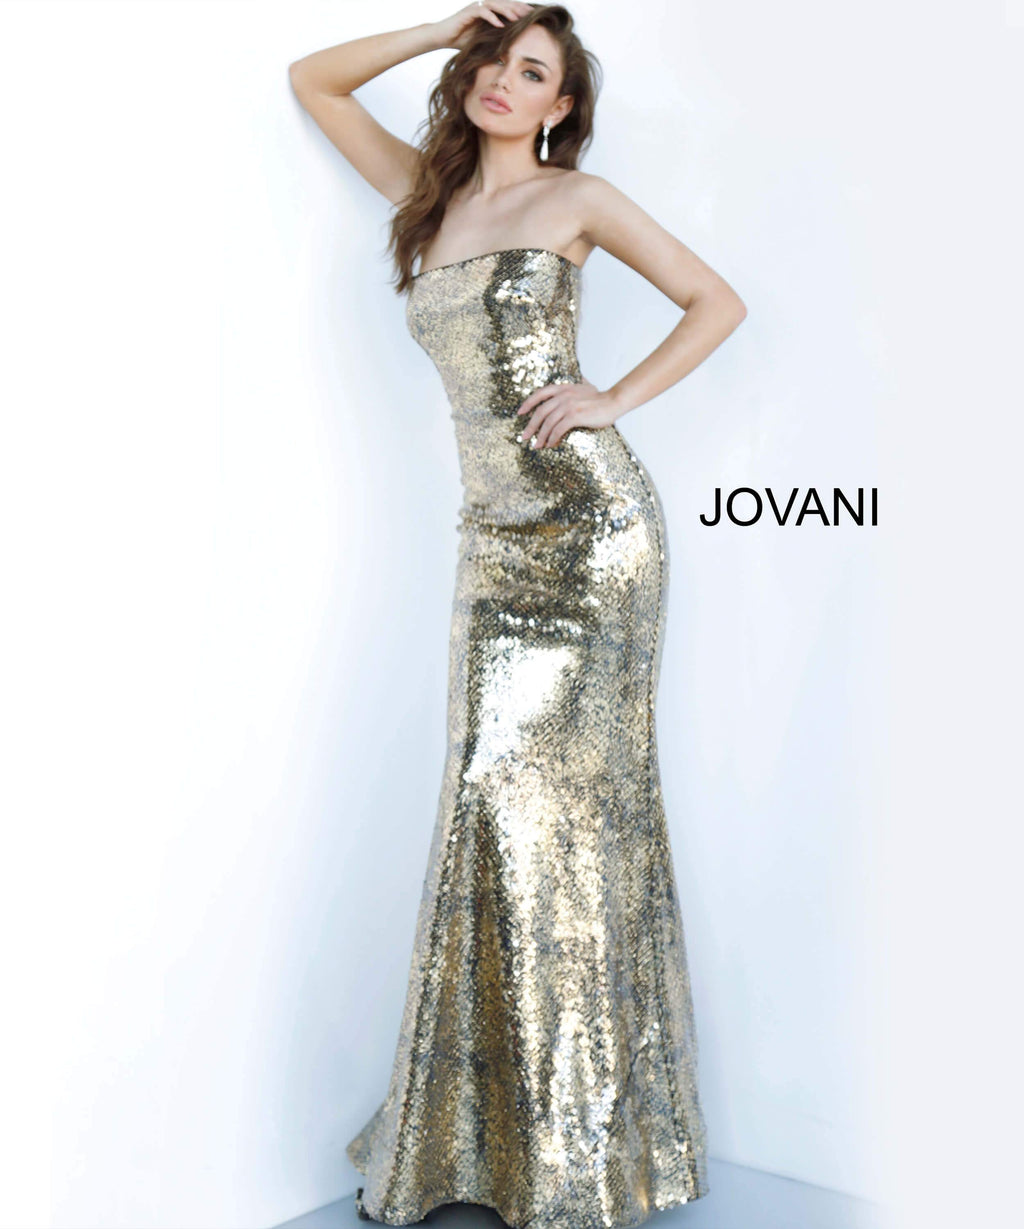 JOVANI 3390 Strapless Metallic Evening Dress